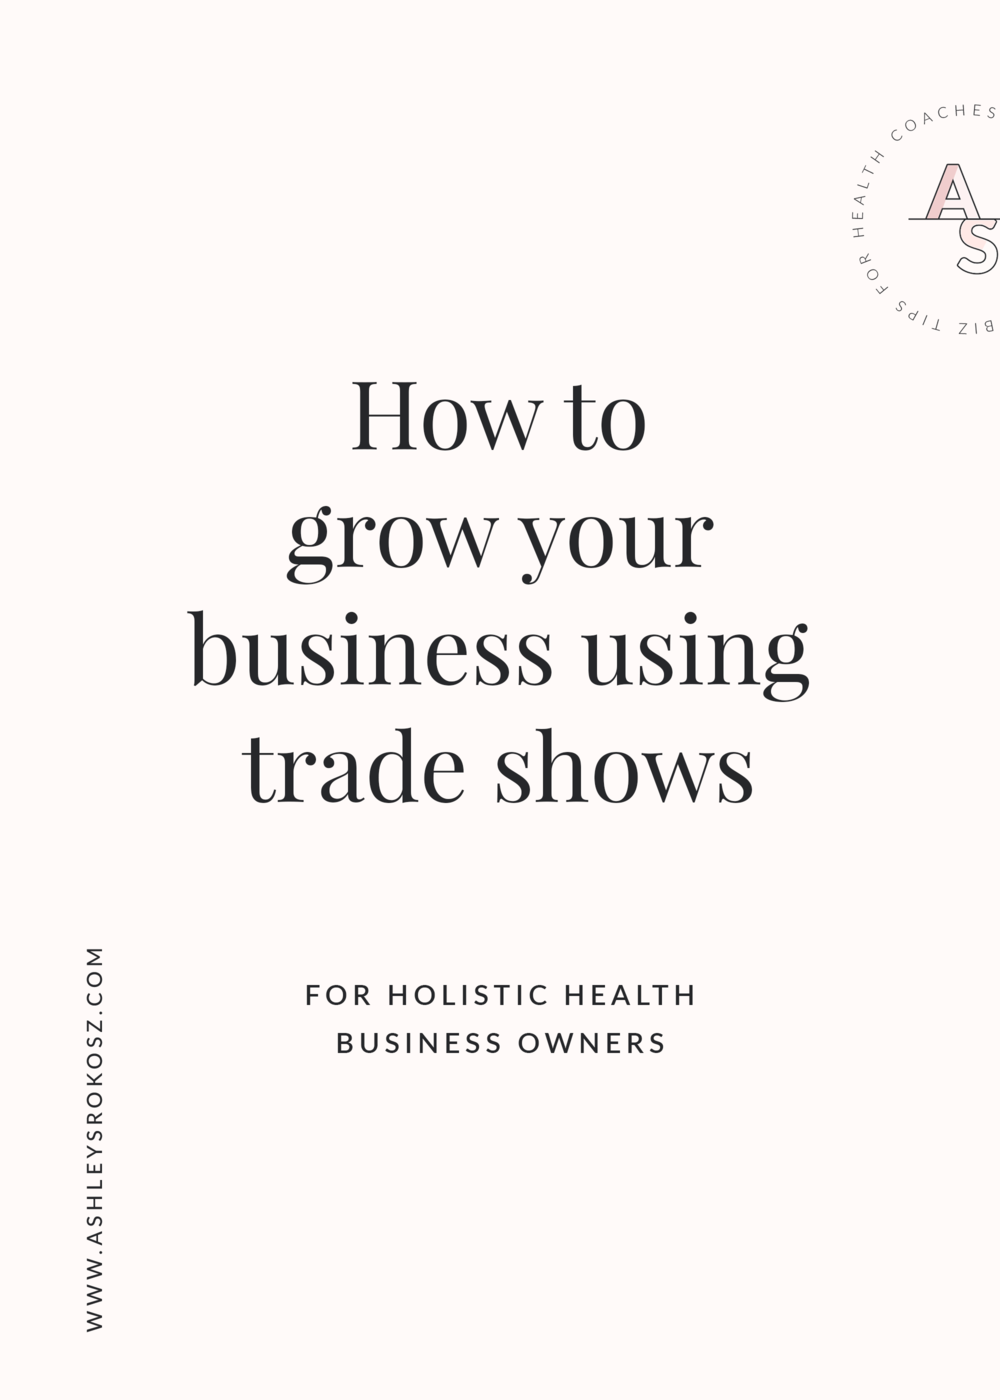 Are you a holistic nutritionist, essential oil advocate, or yoga teacher who does trade shows? Build your business with trade shows and expos faster with these 9 tips! Don't make the mistakes like I did in my first few years of business